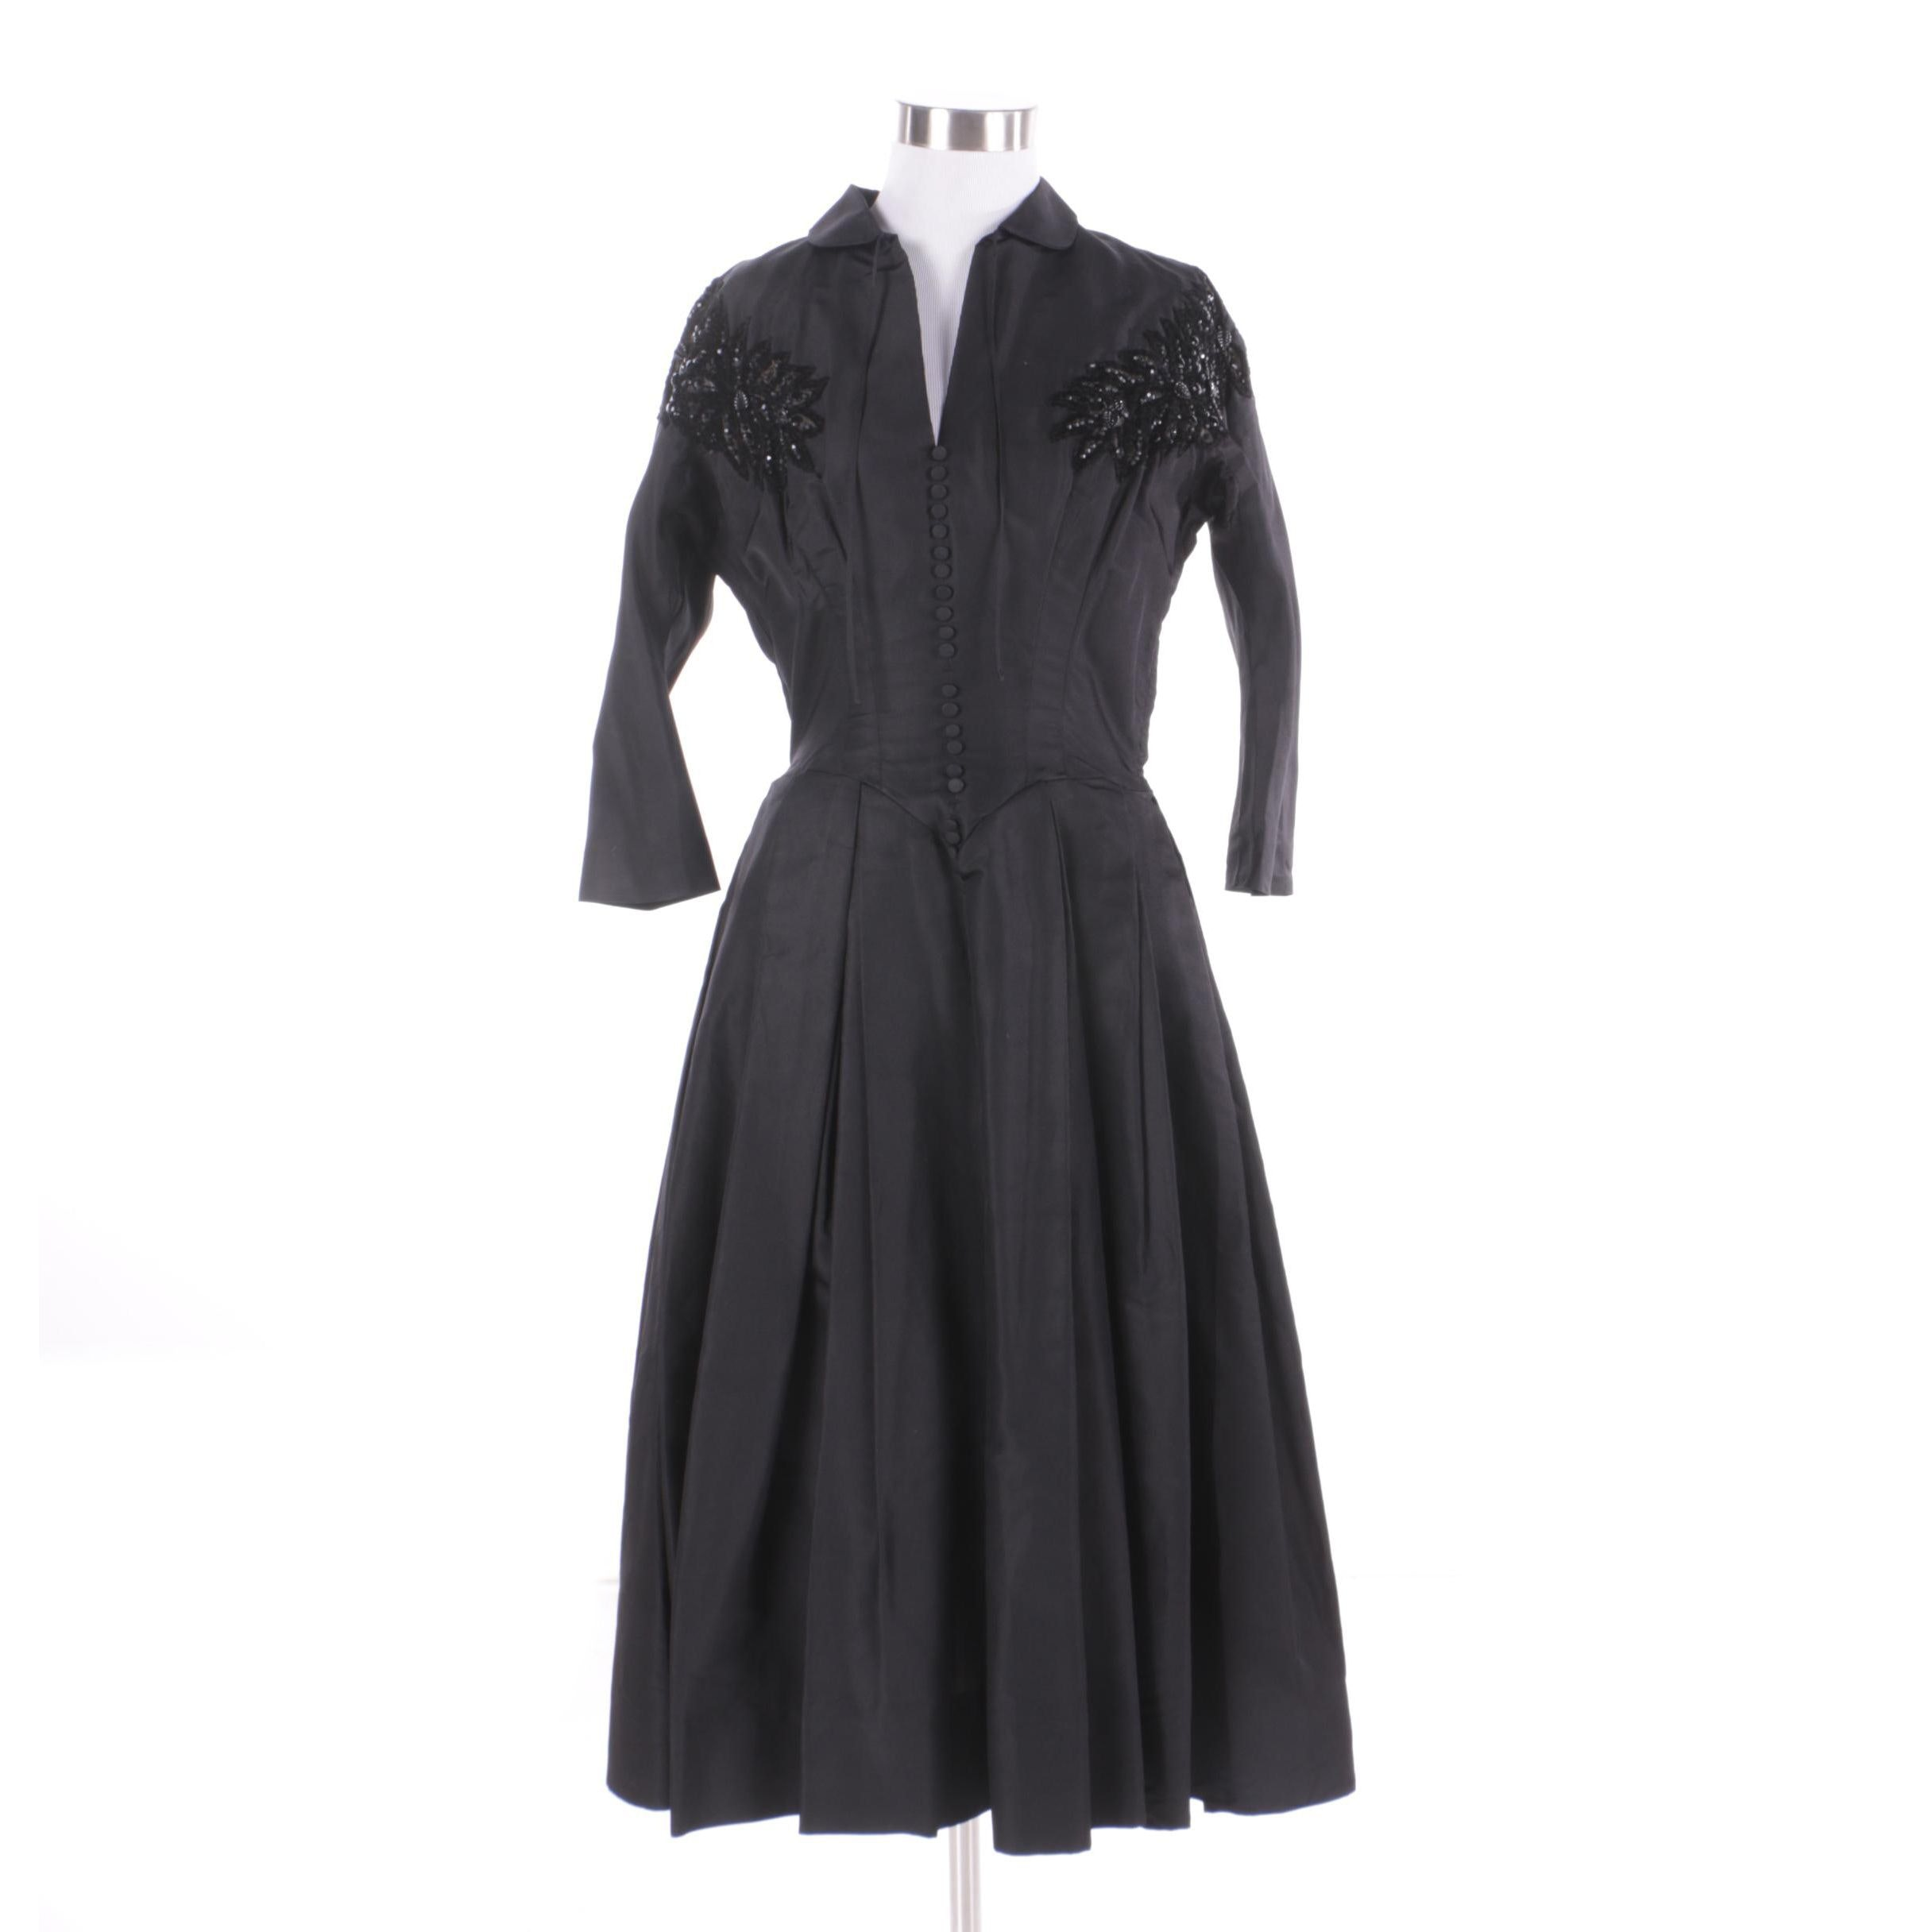 Circa 1950s Vintage Black Cocktail Dress with Embellished Mesh Accents